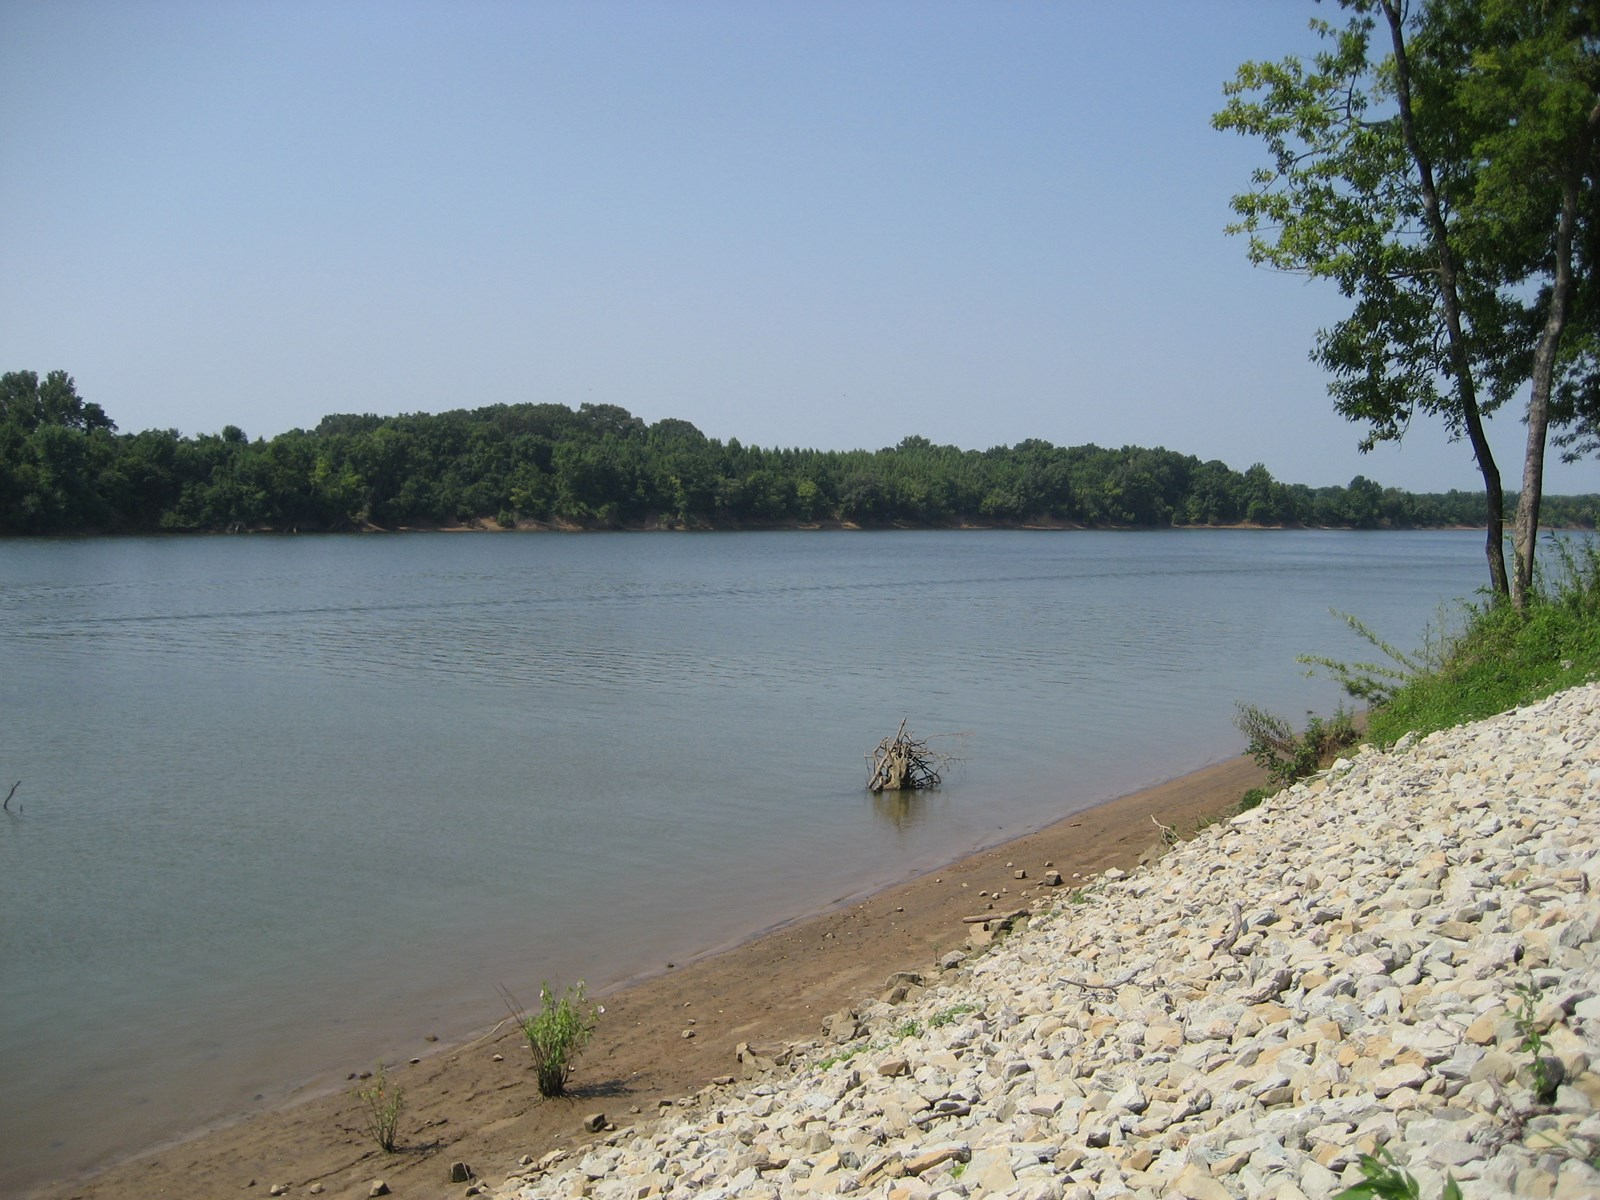 WATERFRONT LAND FOR SALE – TN RIVER FRONT LOT